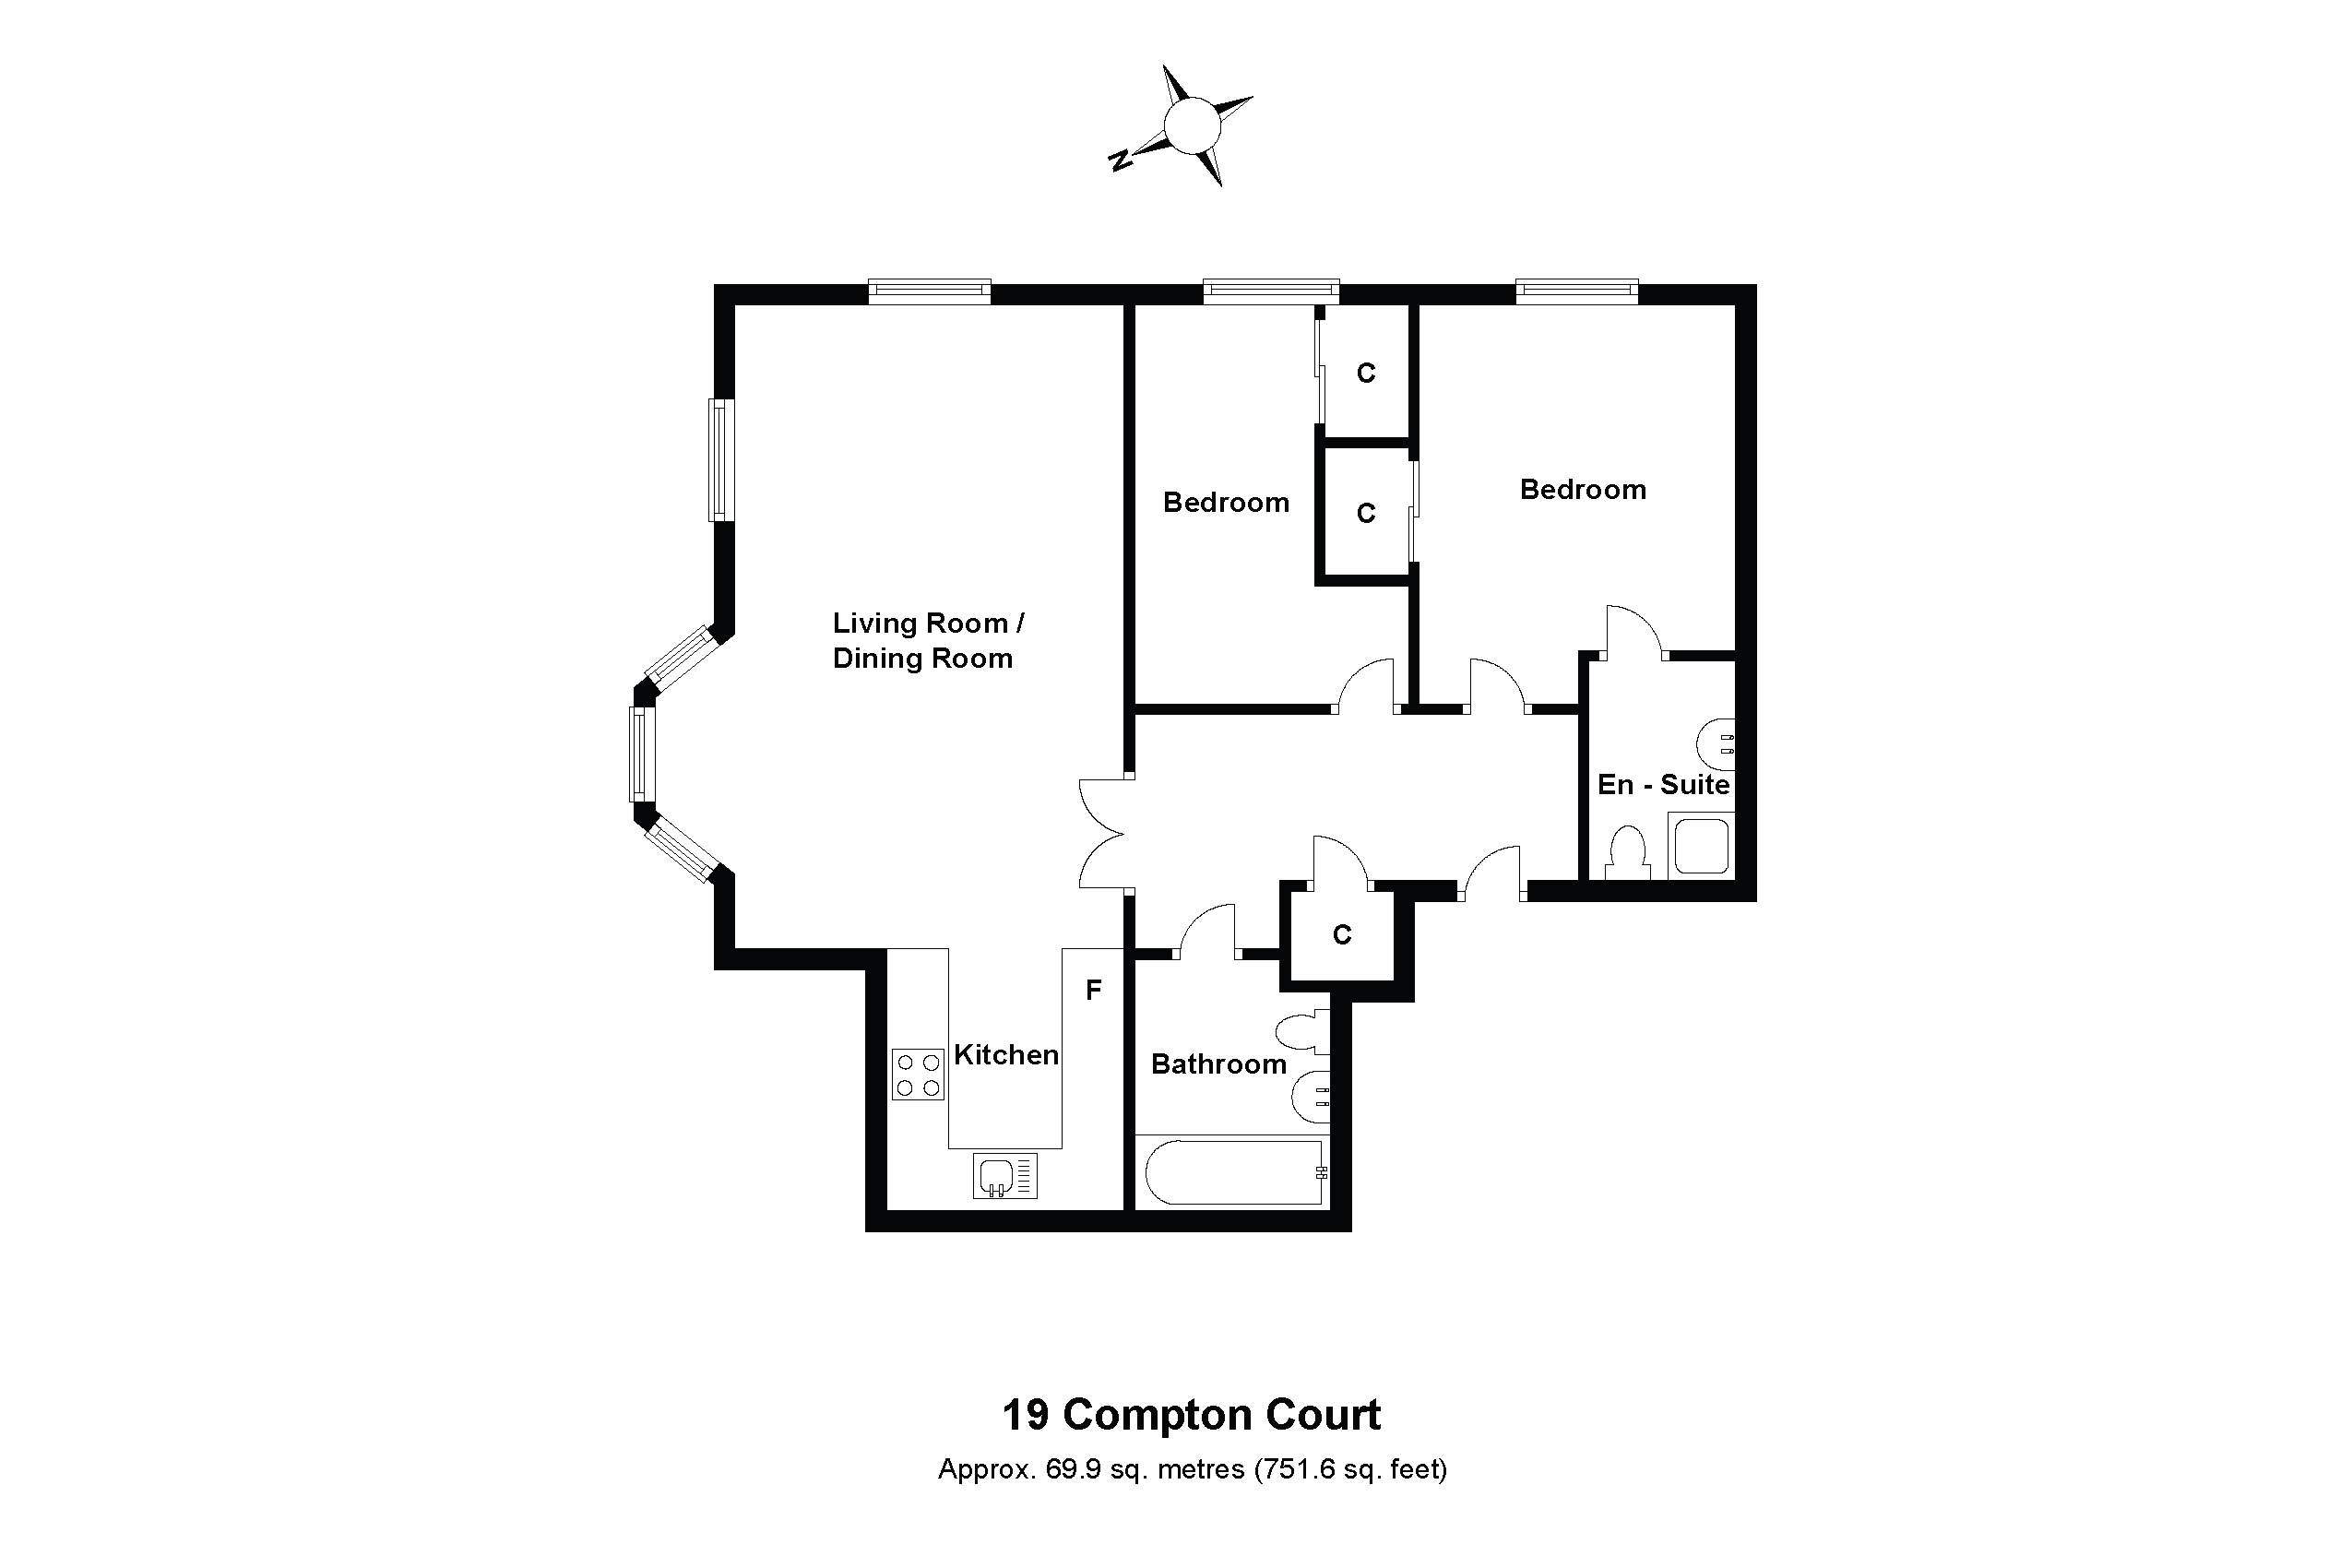 19 Compton Court Floorplan